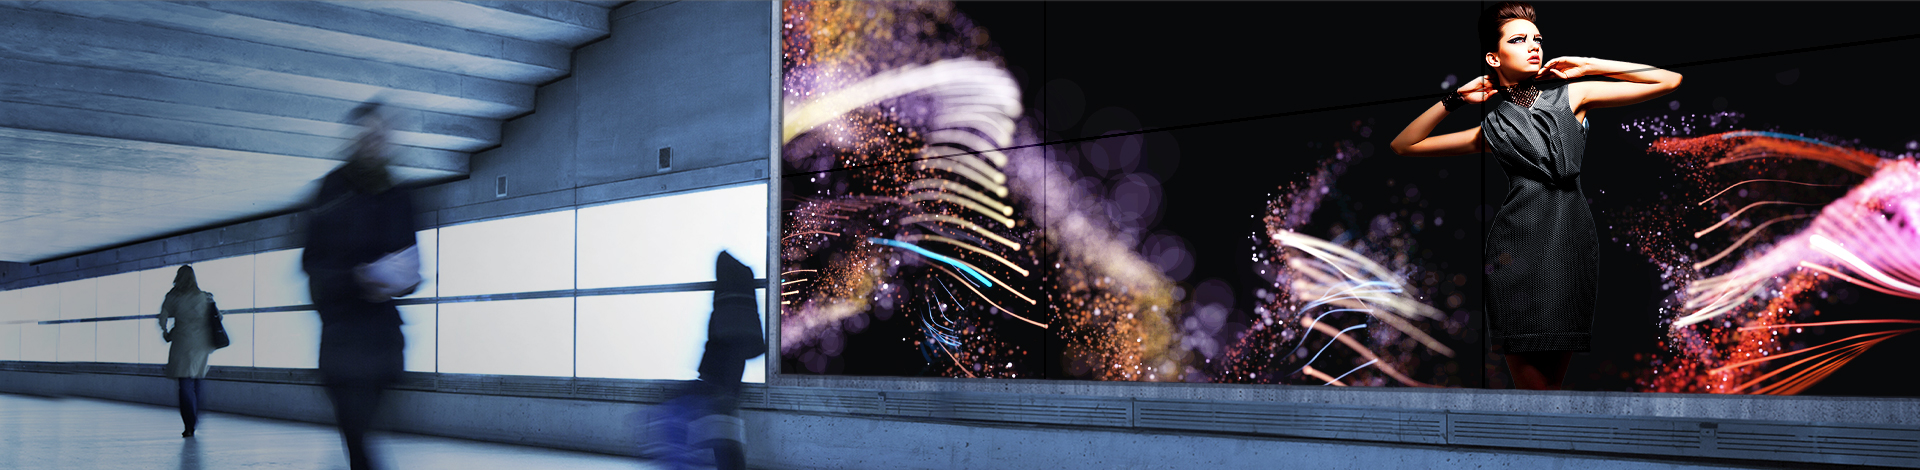 Solutii Samsung Video Wall